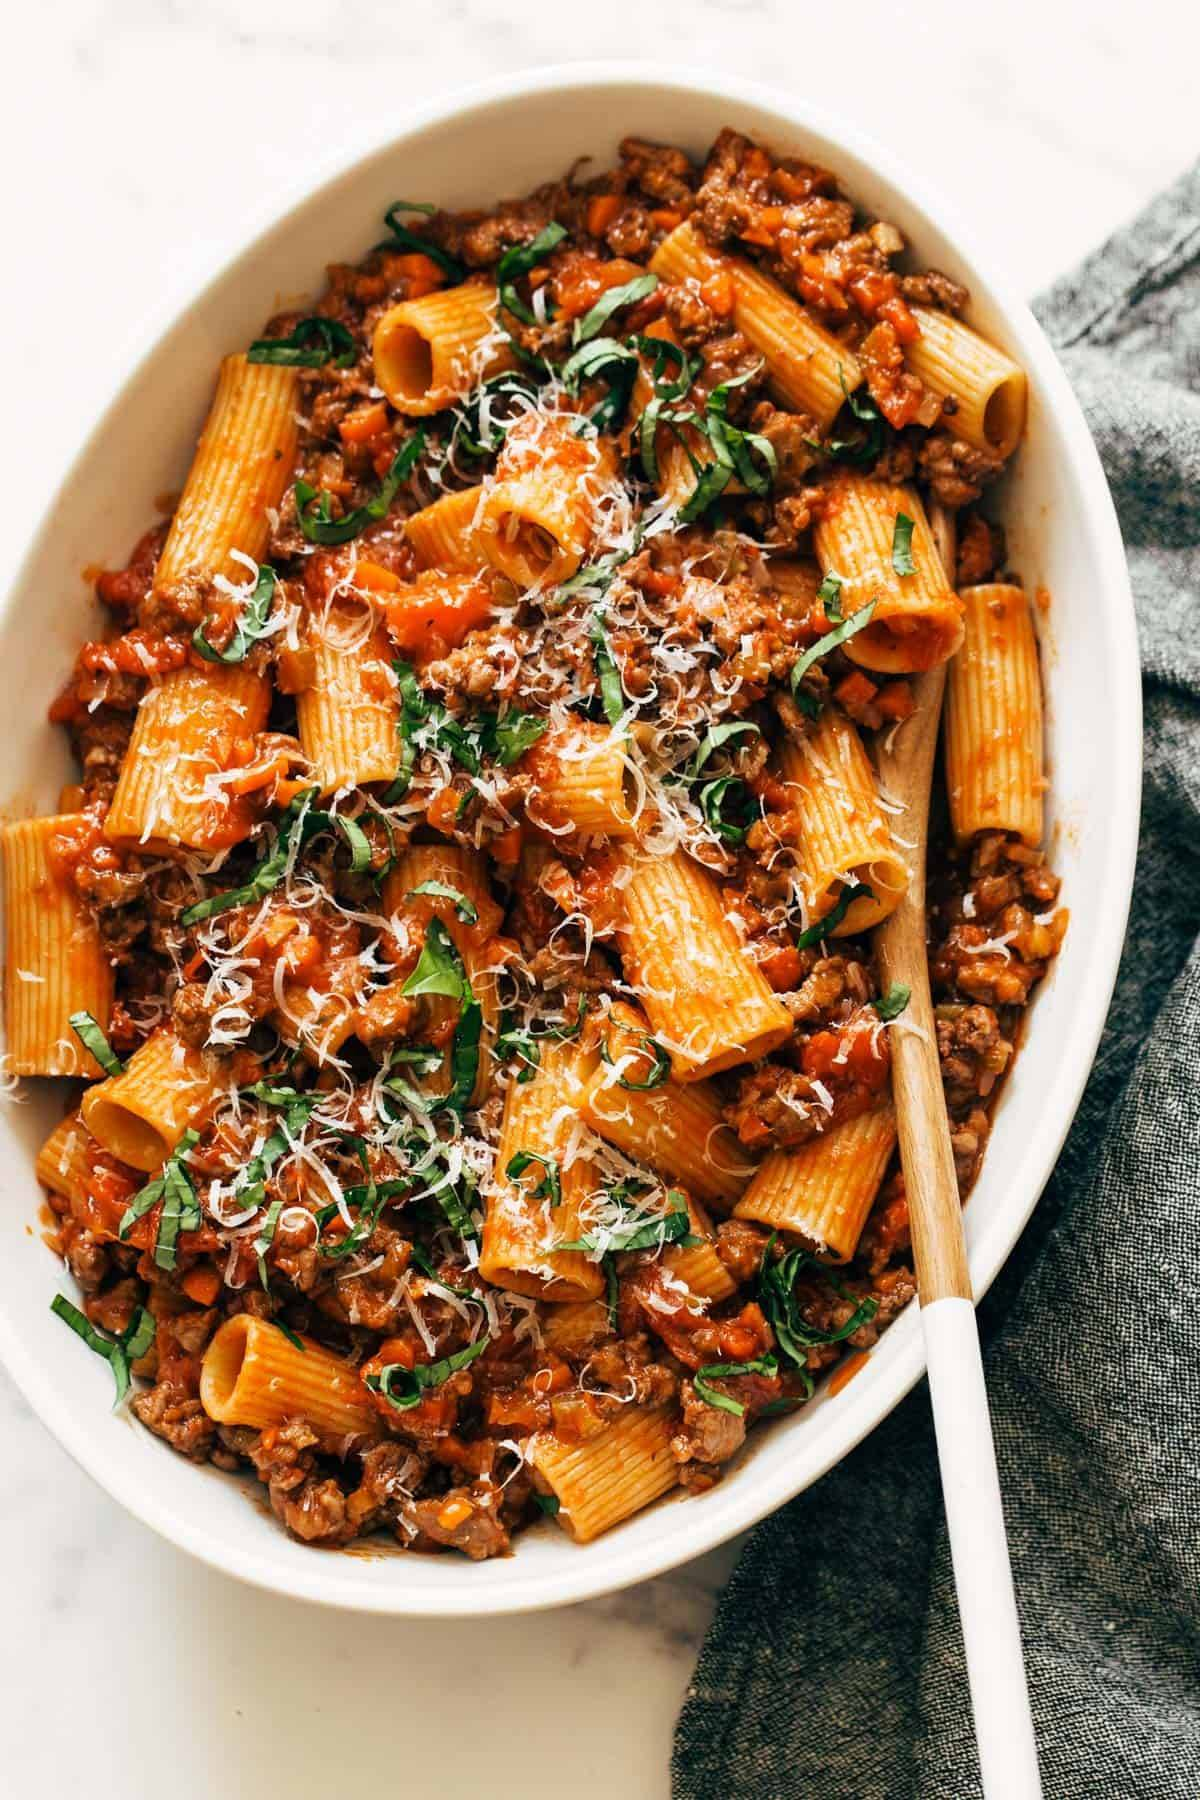 Spicy Sausage Rigatoni in a serving dish with wooden spoon.